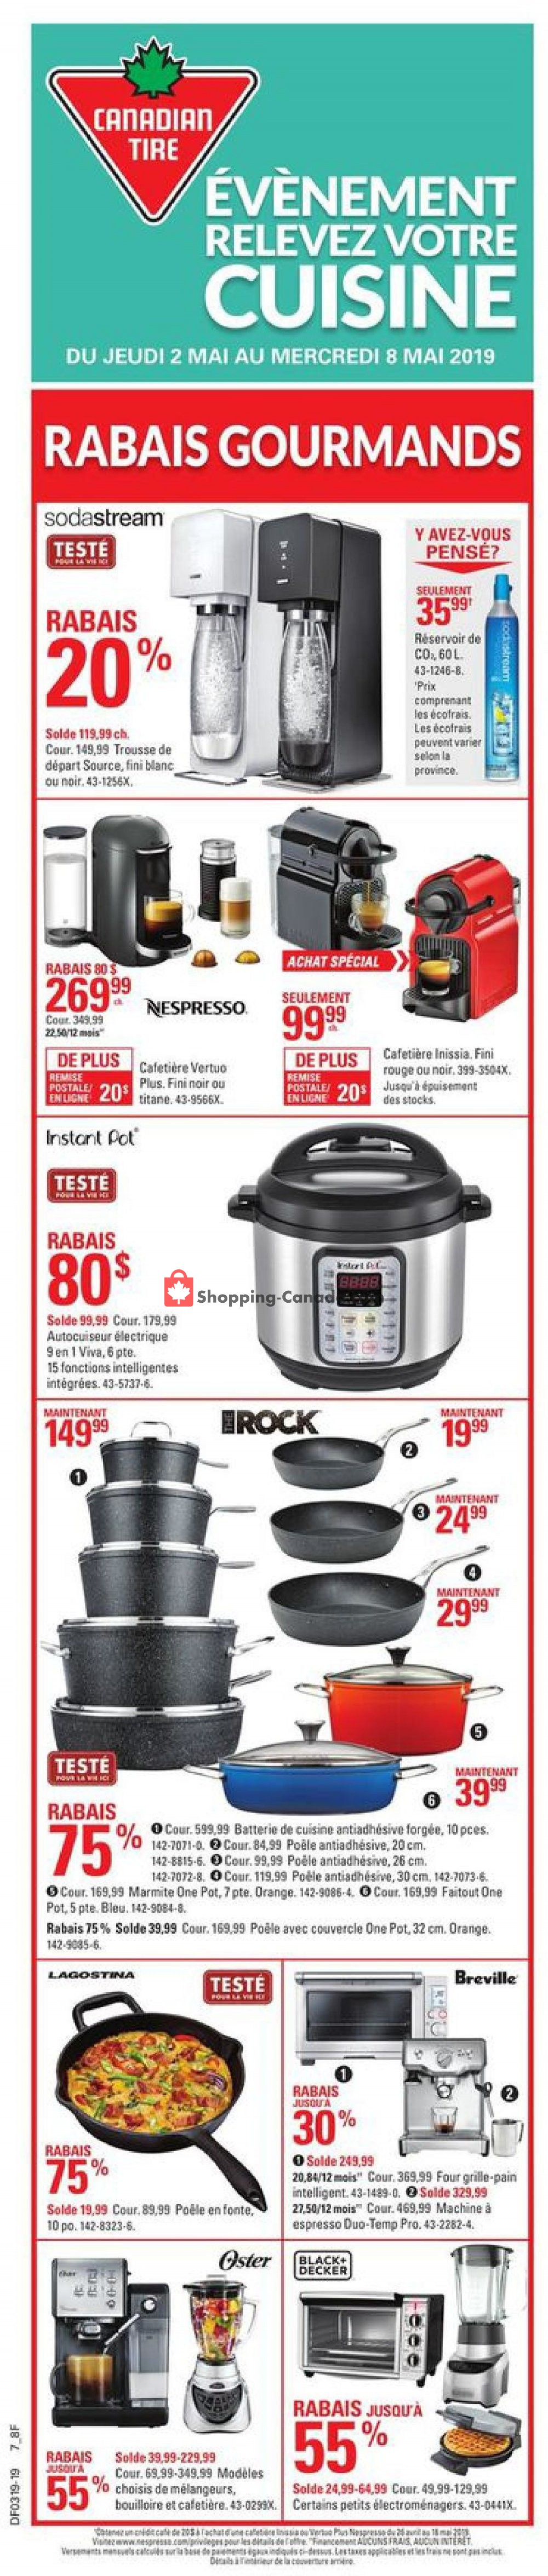 Flyer Canadian Tire Canada - from Thursday May 2, 2019 to Wednesday May 8, 2019